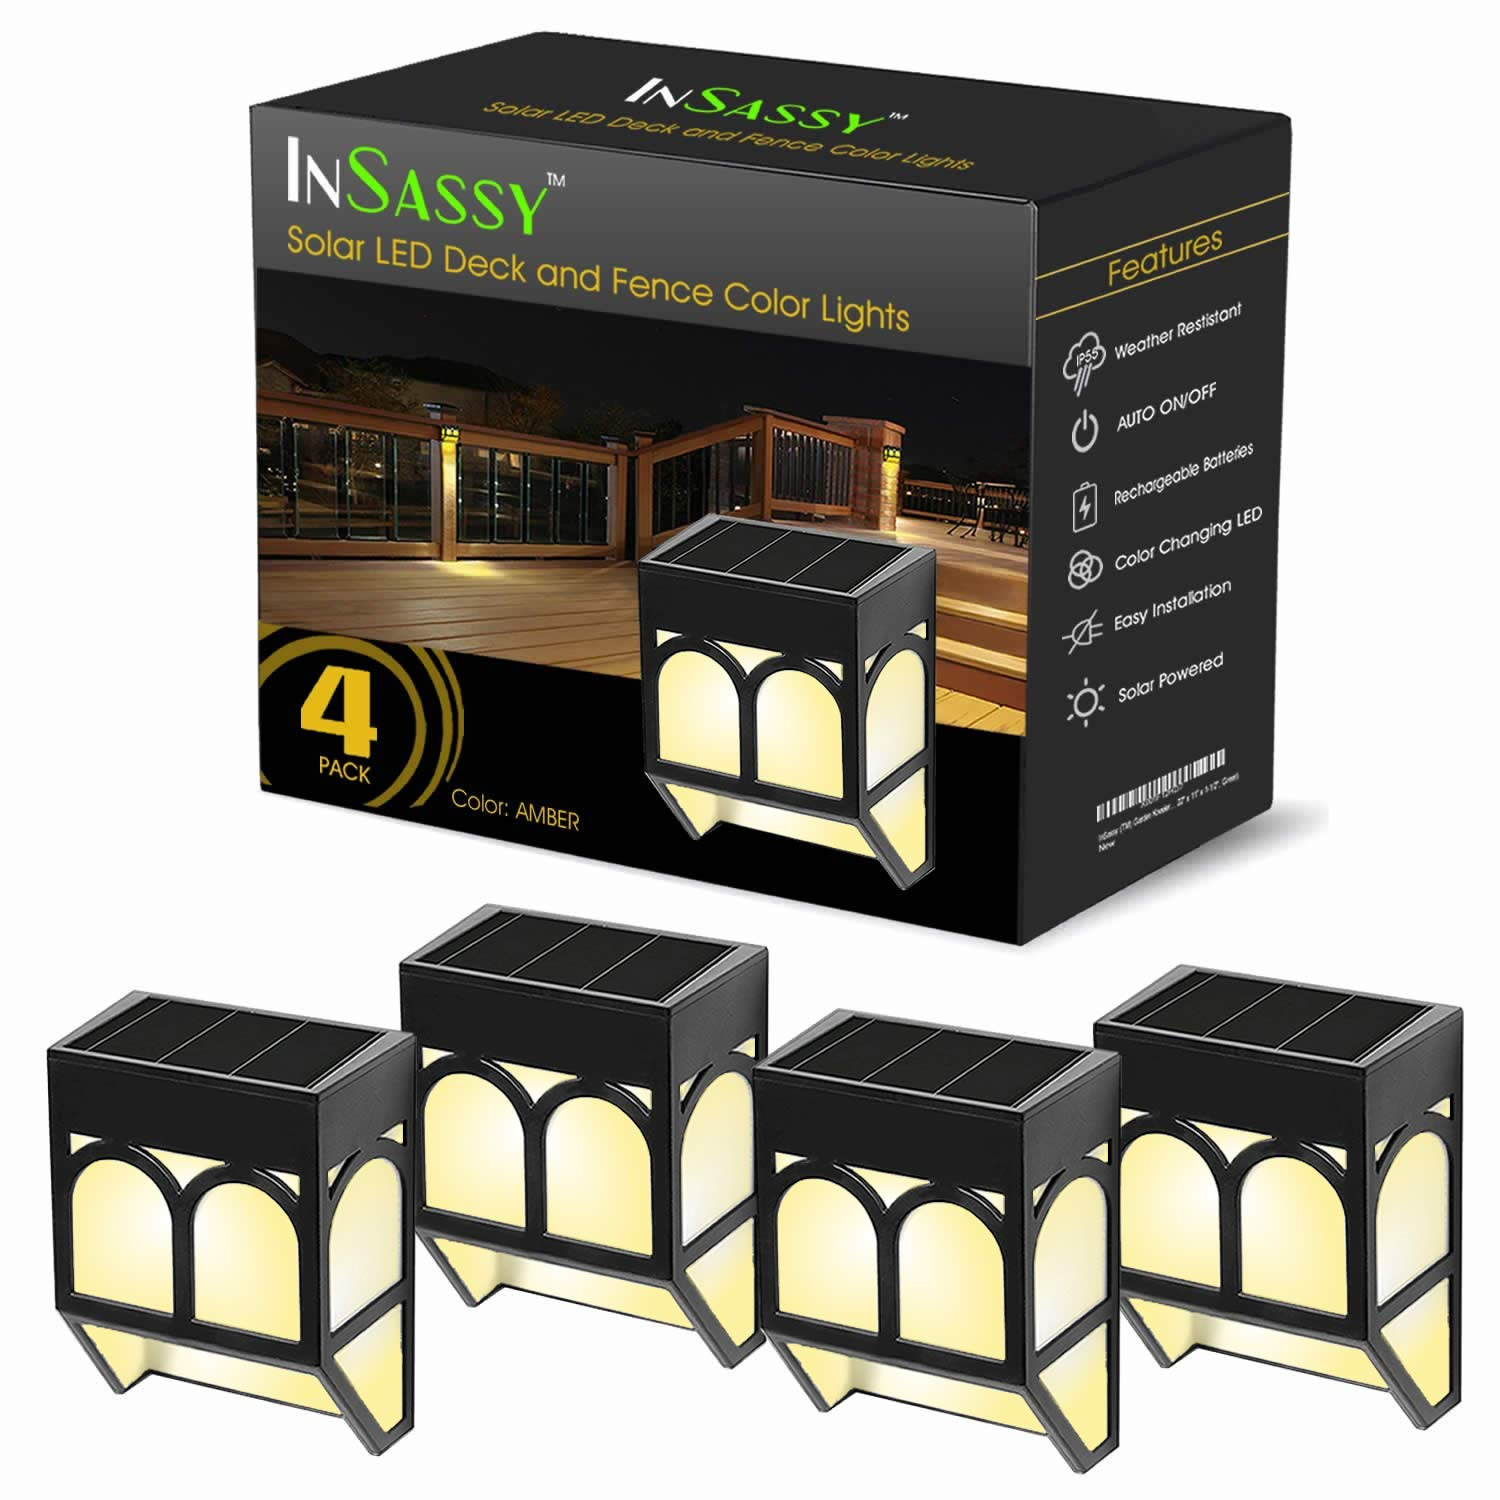 InSassy Solar Wall Lights Outdoor - Wireless Led Waterproof Security Lighting for Deck, Fence, Patio, Front Door, Wall, Stair, Landscape, Yard and Driveway Path - Warm/Color Changing - 4 Pack